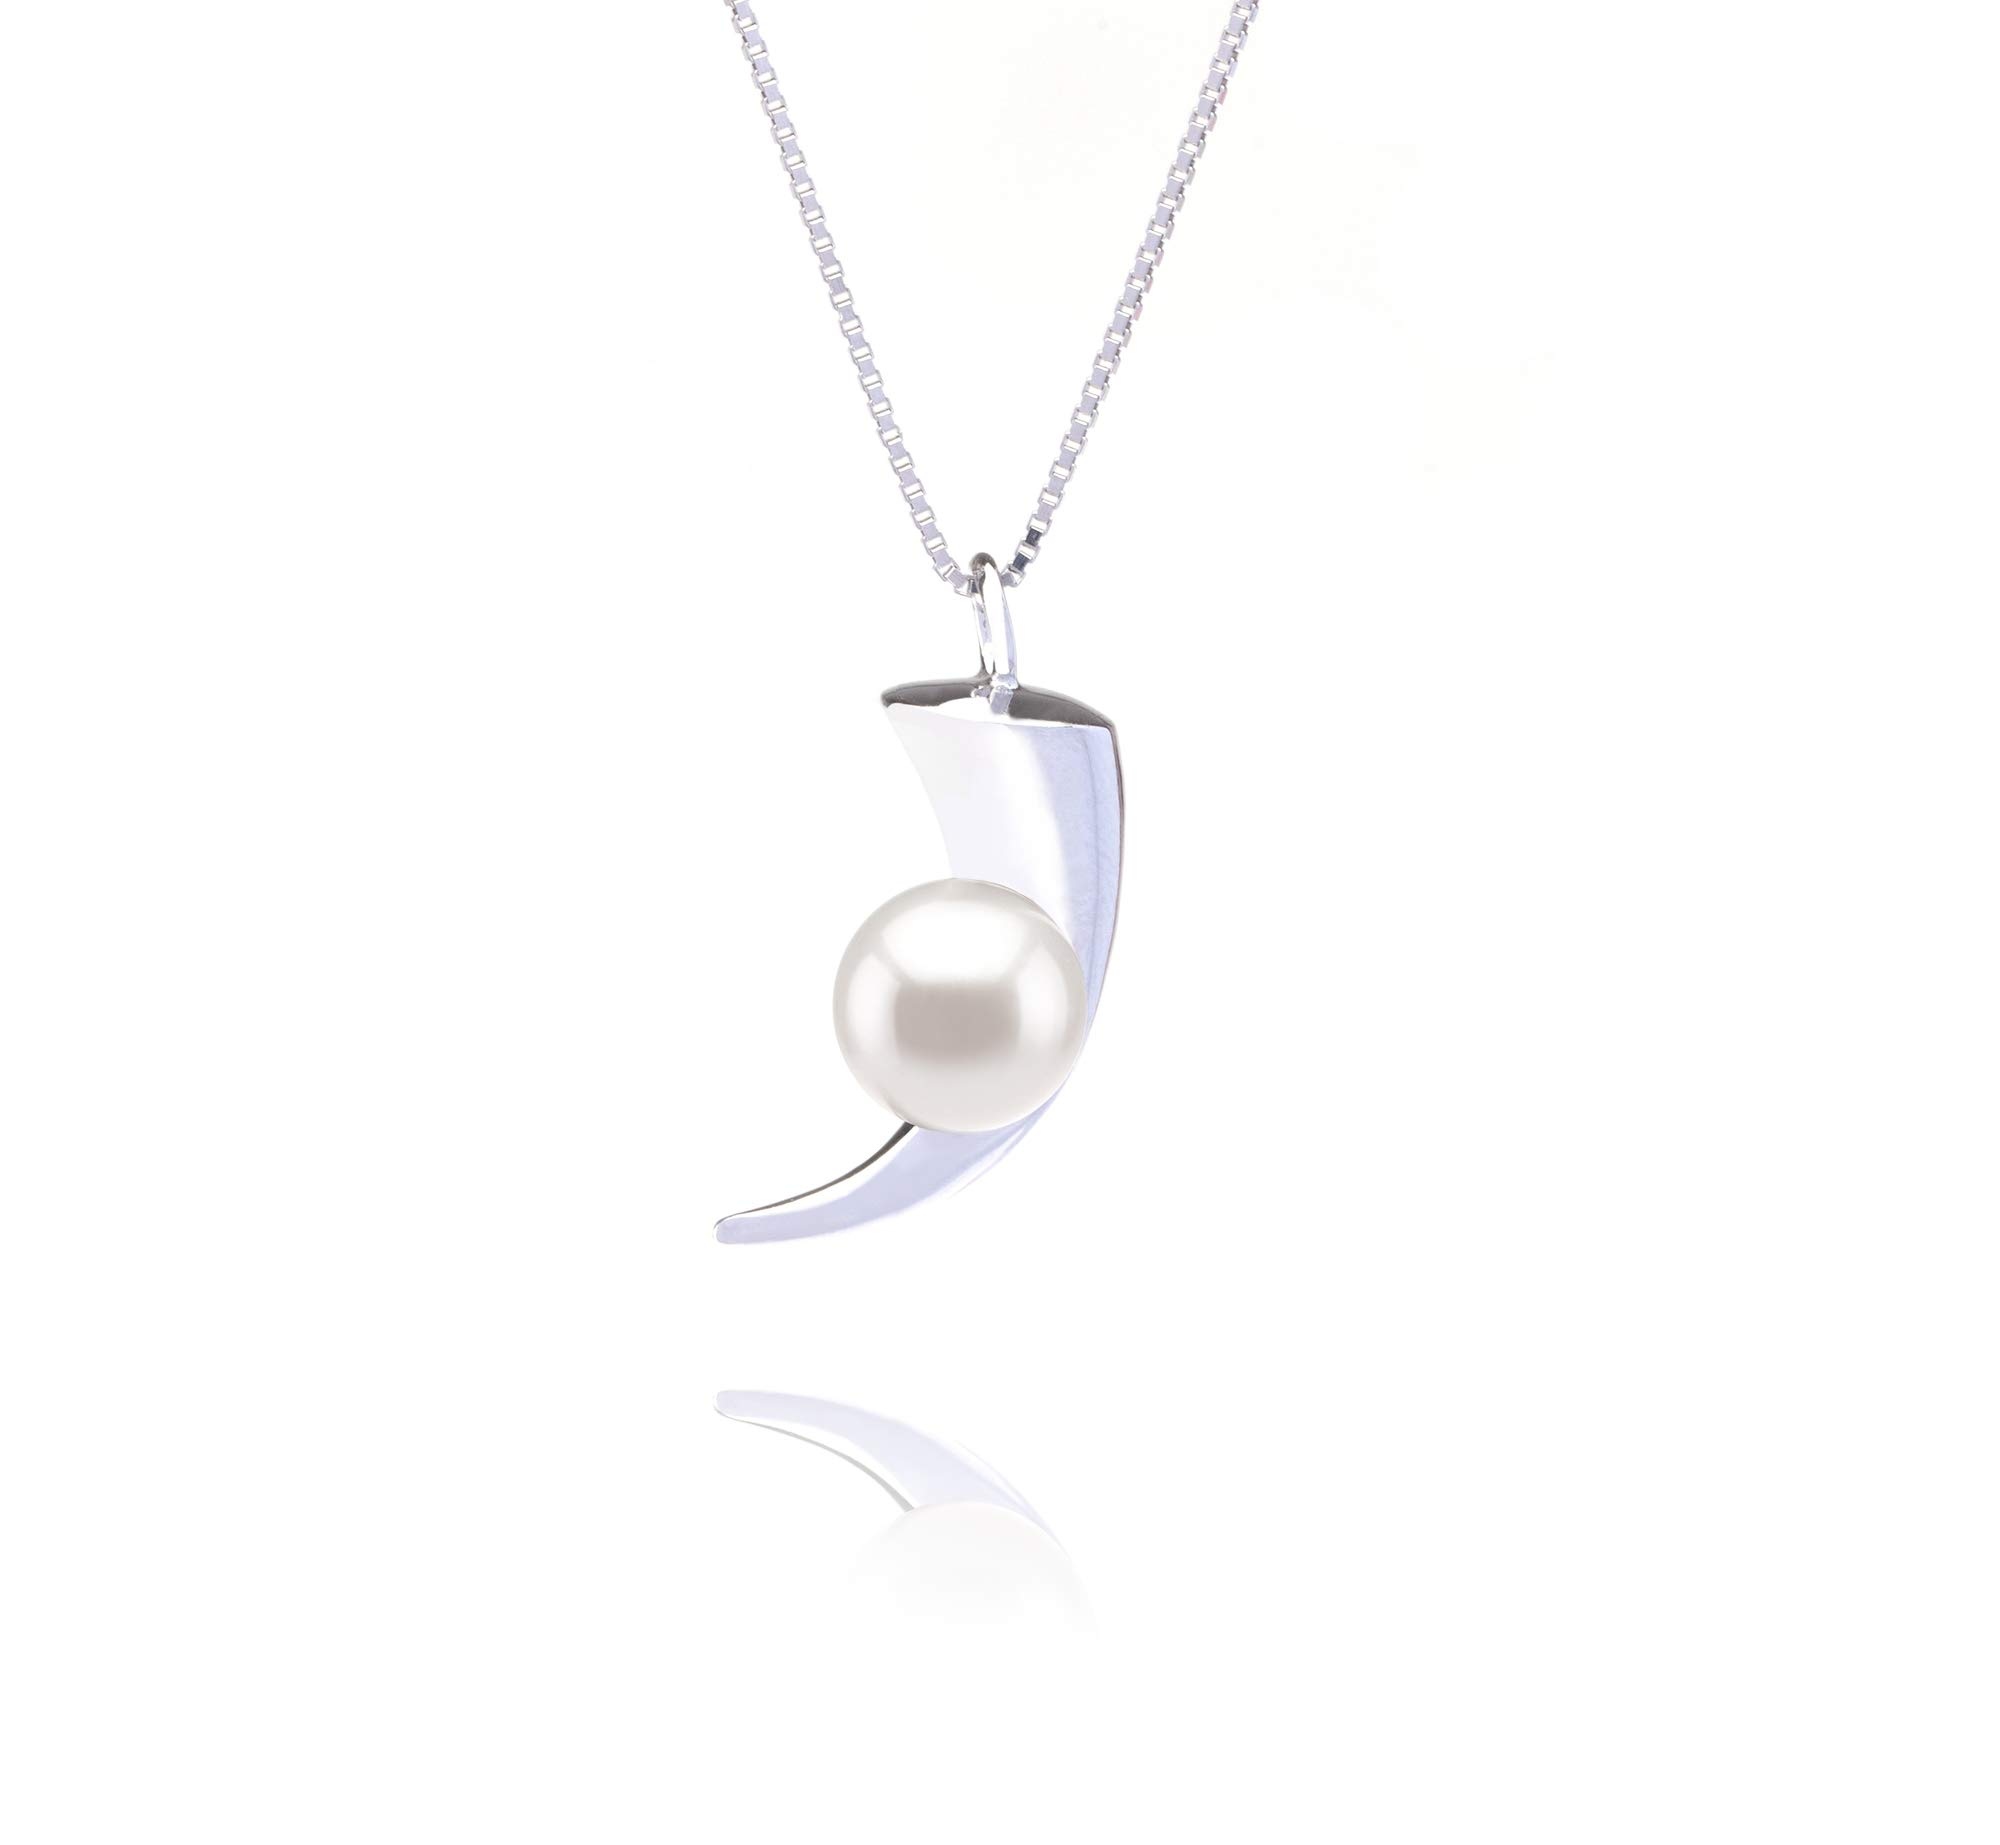 Larina White 8-9mm AAAA Quality Freshwater 925 Sterling Silver Cultured Pearl Pendant For Women by PearlsOnly (Image #1)